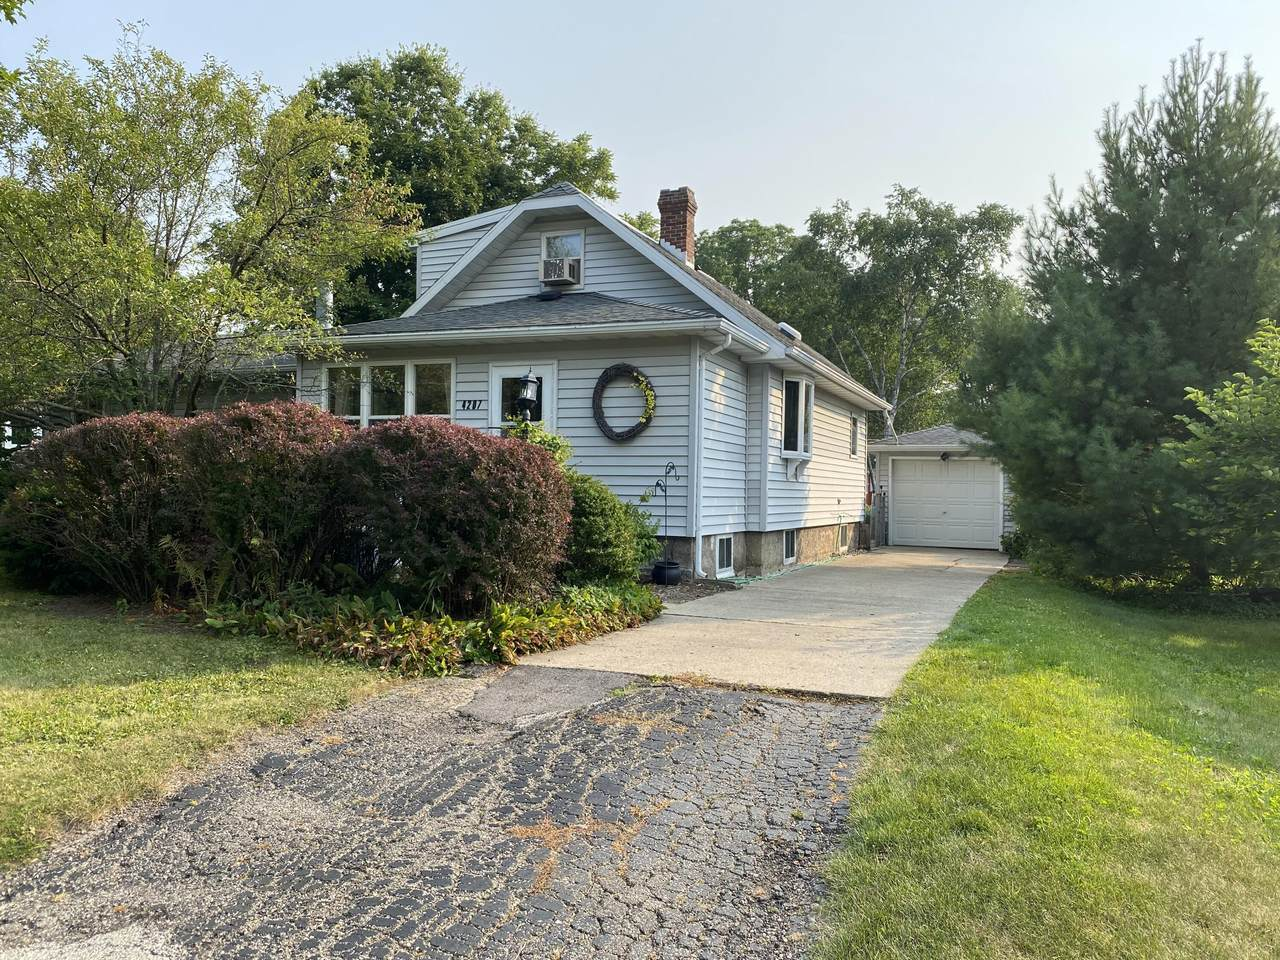 4207 Maher Ave - Photo 1